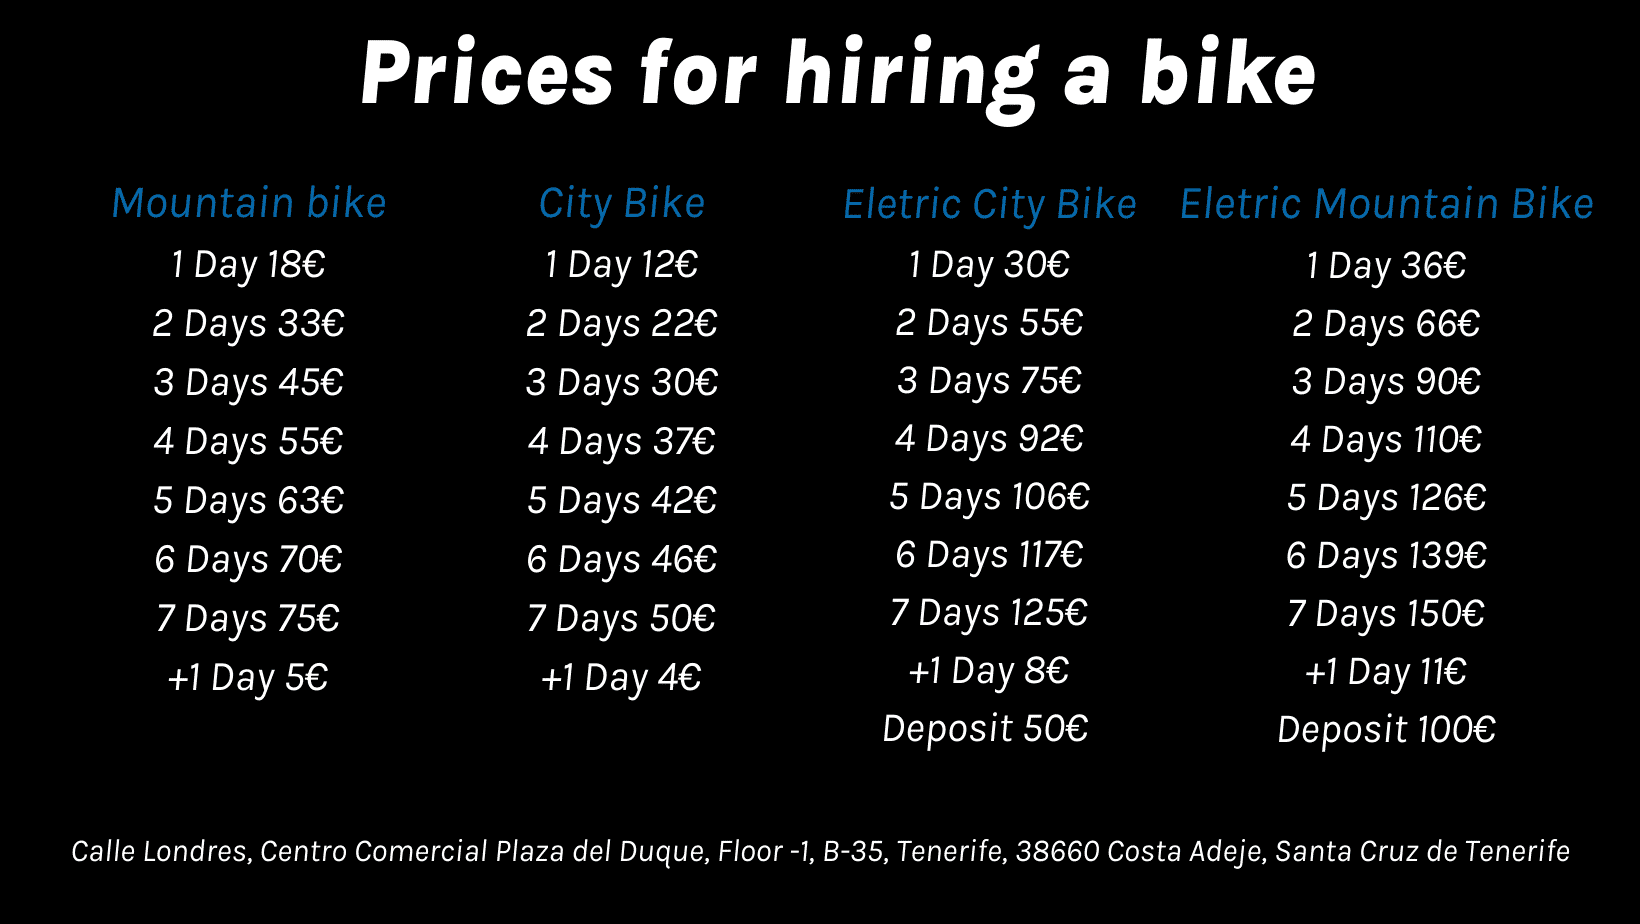 Prices for hiring a bike in Tenerife